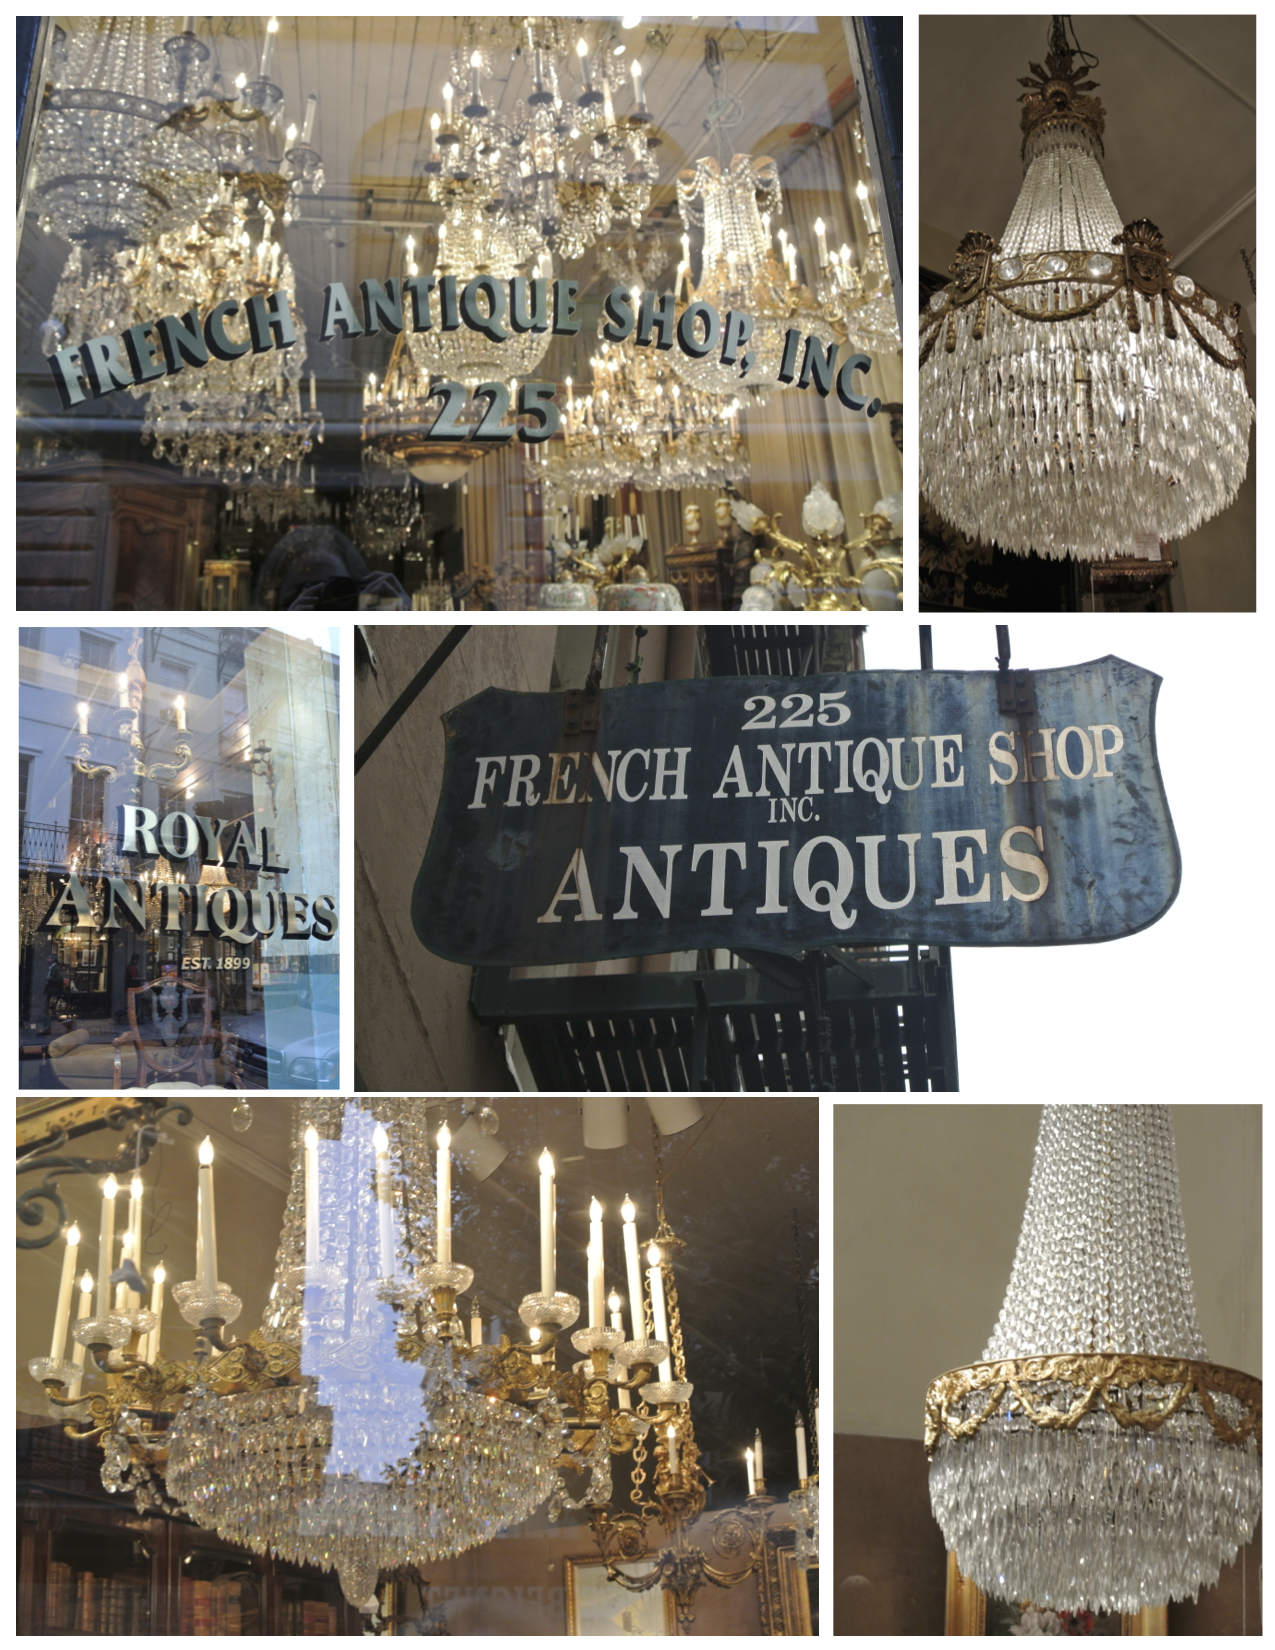 most attachment chandeliers lighting antique view furniture magnificent glass ceiling photos design murano black chandelier french lights of gallery to up inside date showing